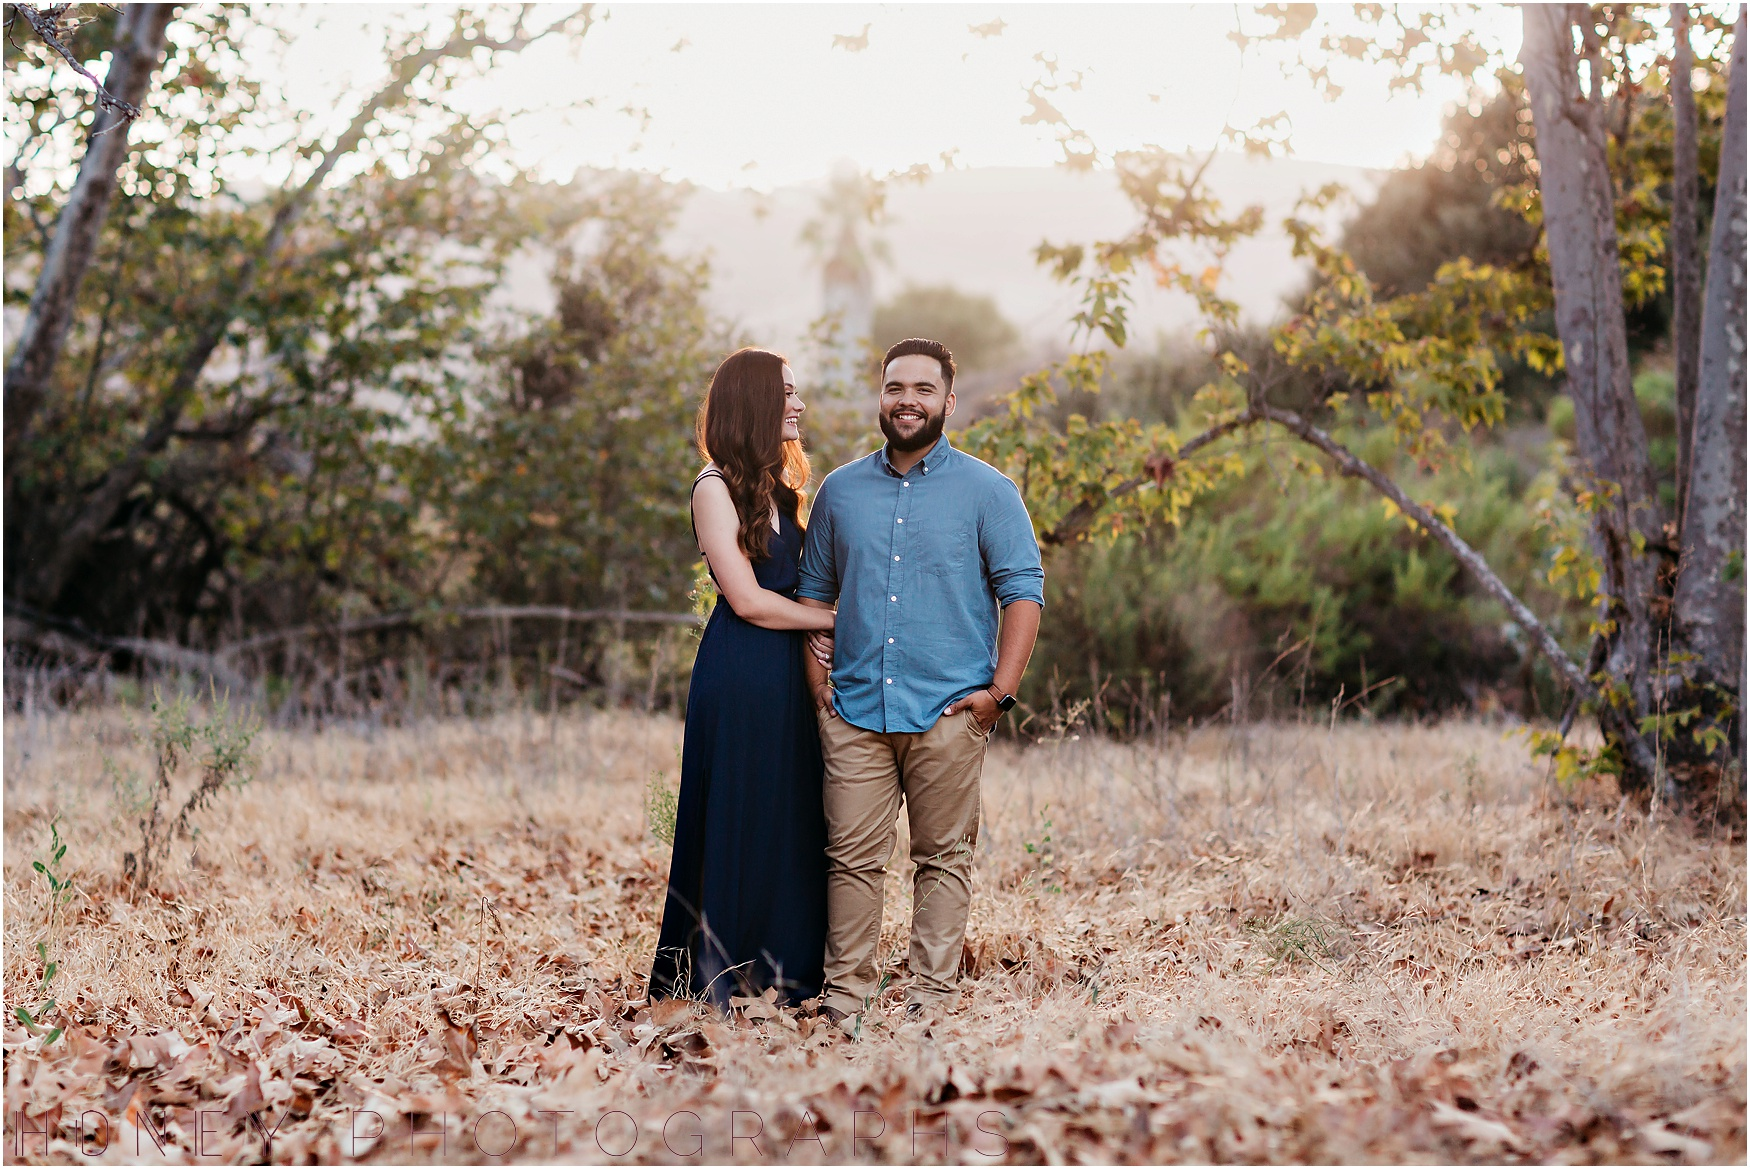 marian_bear_sunset_woods_san_diego_engagement022.jpg